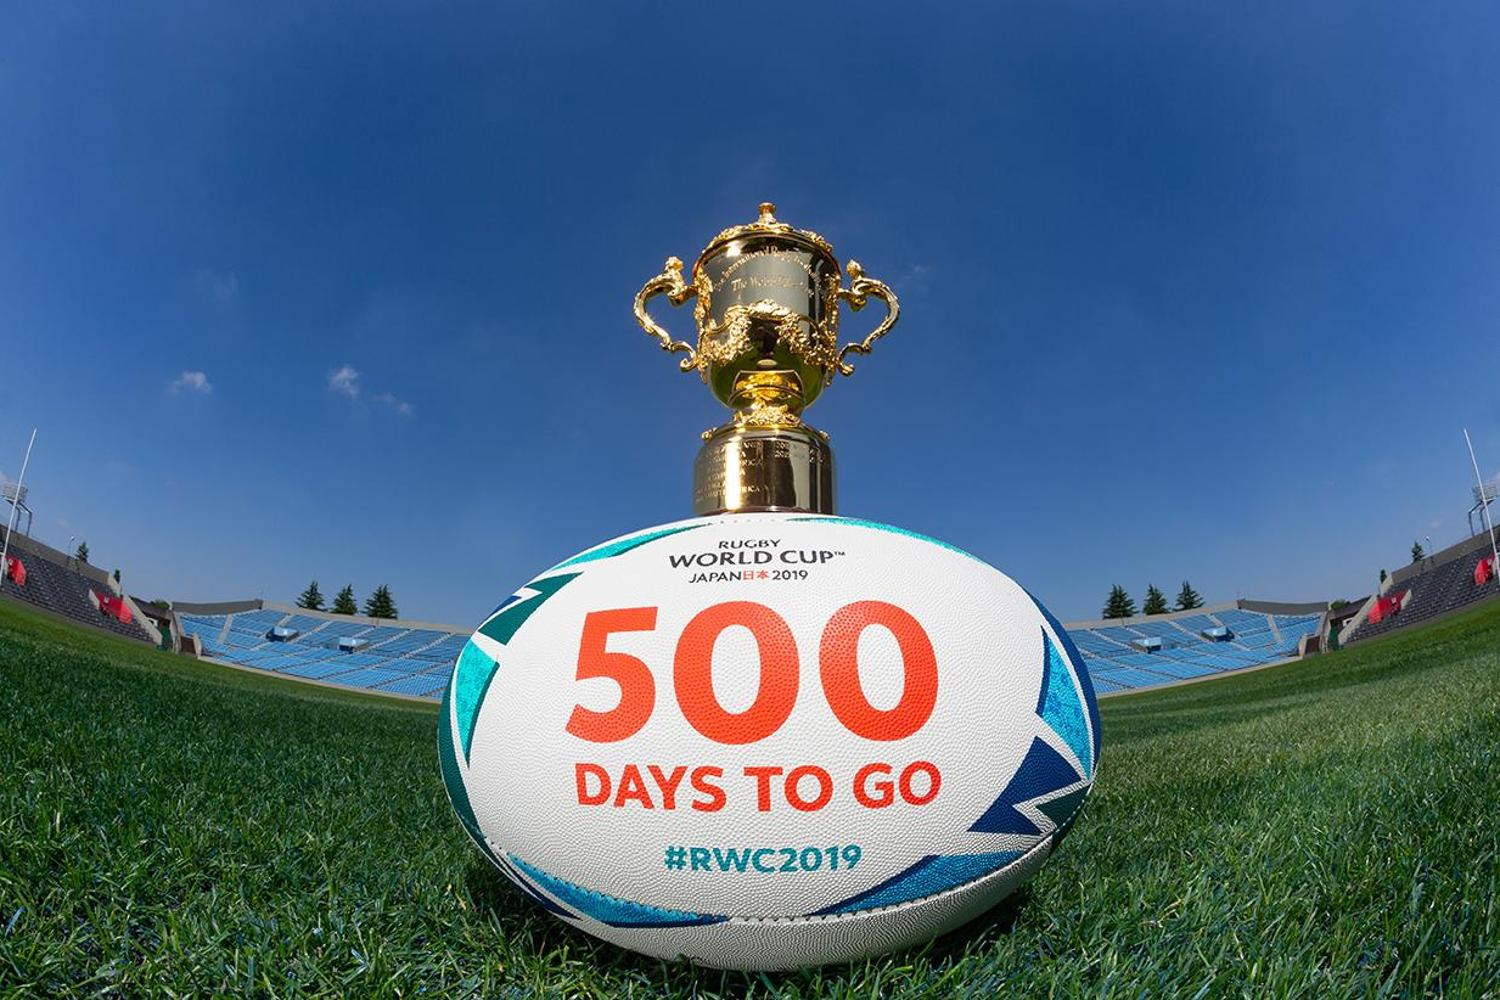 500 days to go